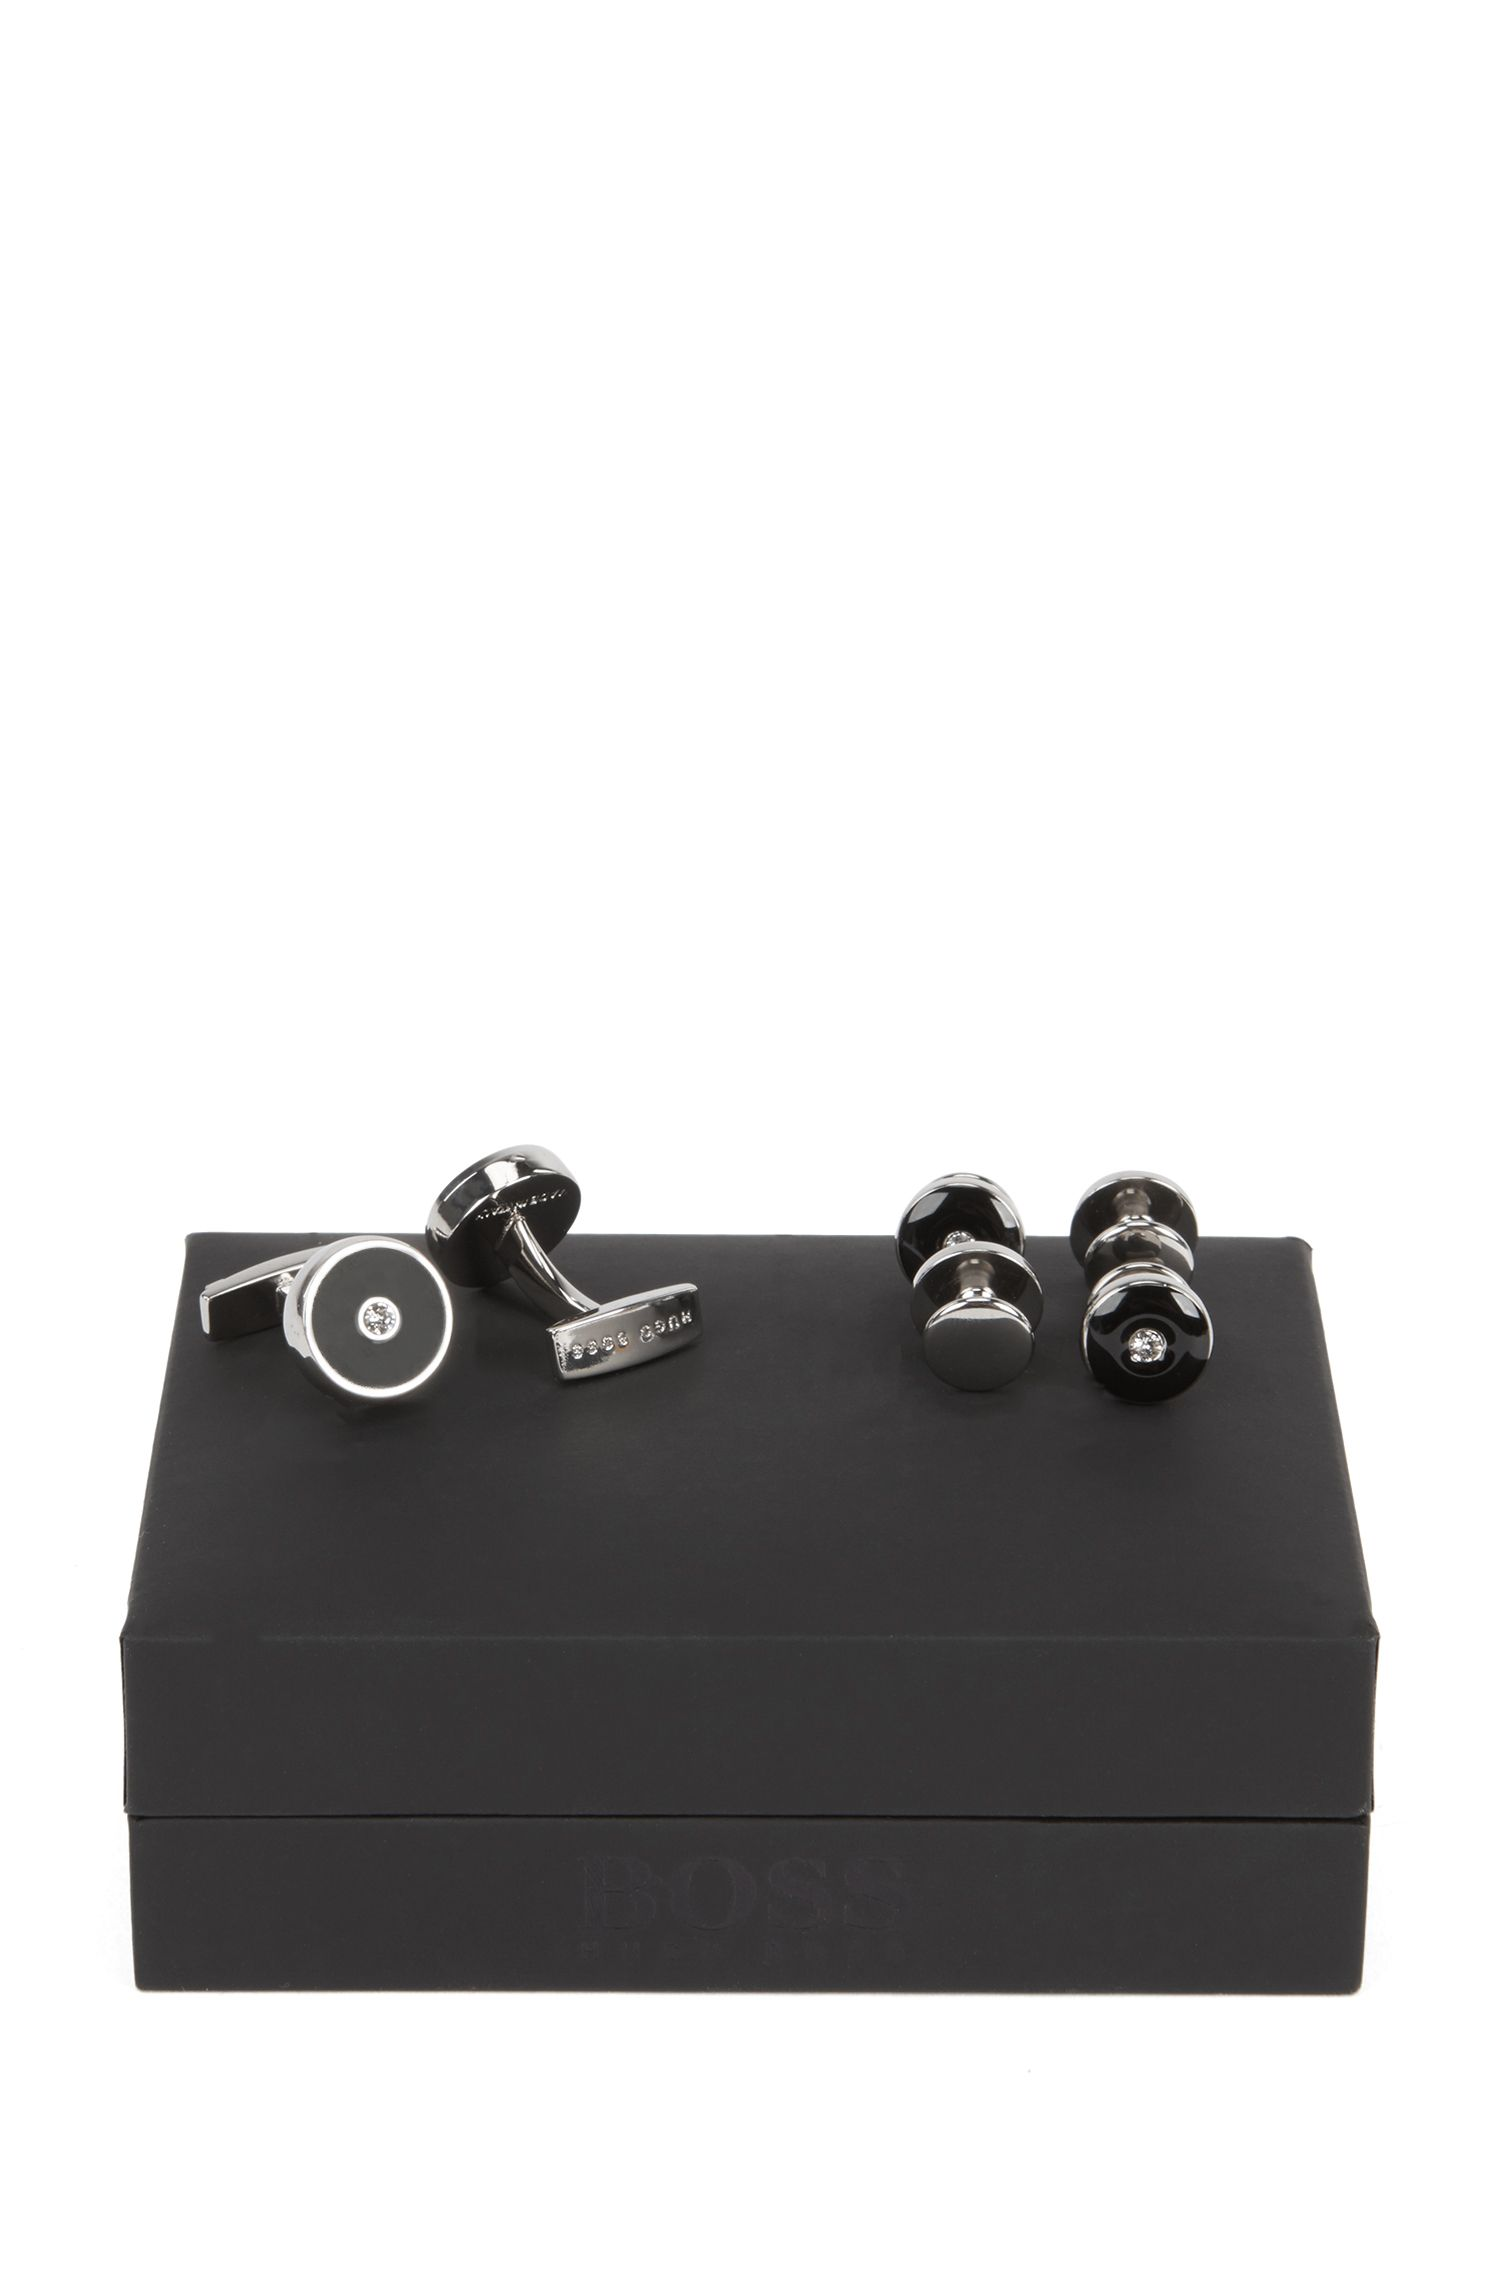 Round hand-polished brass and enamel cufflinks and studs gift set, Black